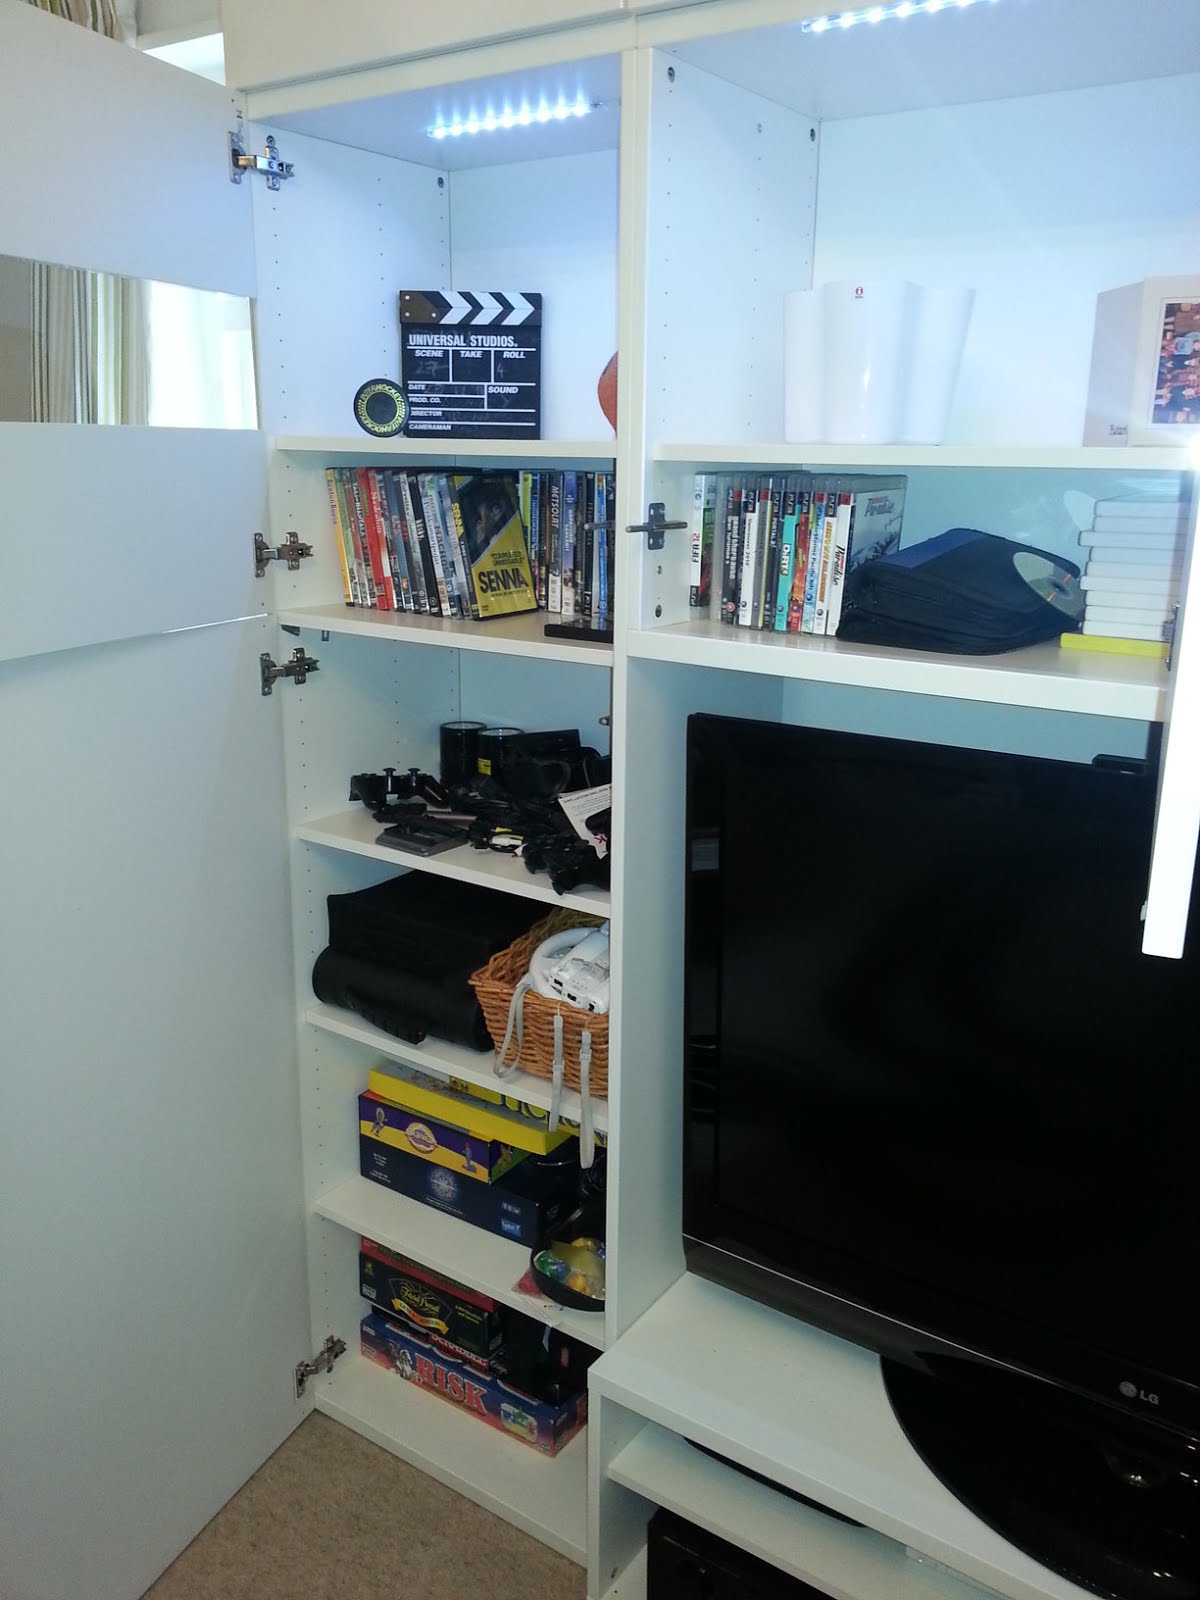 Ikea Lack Wall Shelf Unit Full Wall Besta Media Unit - Ikea Hackers - Ikea Hackers